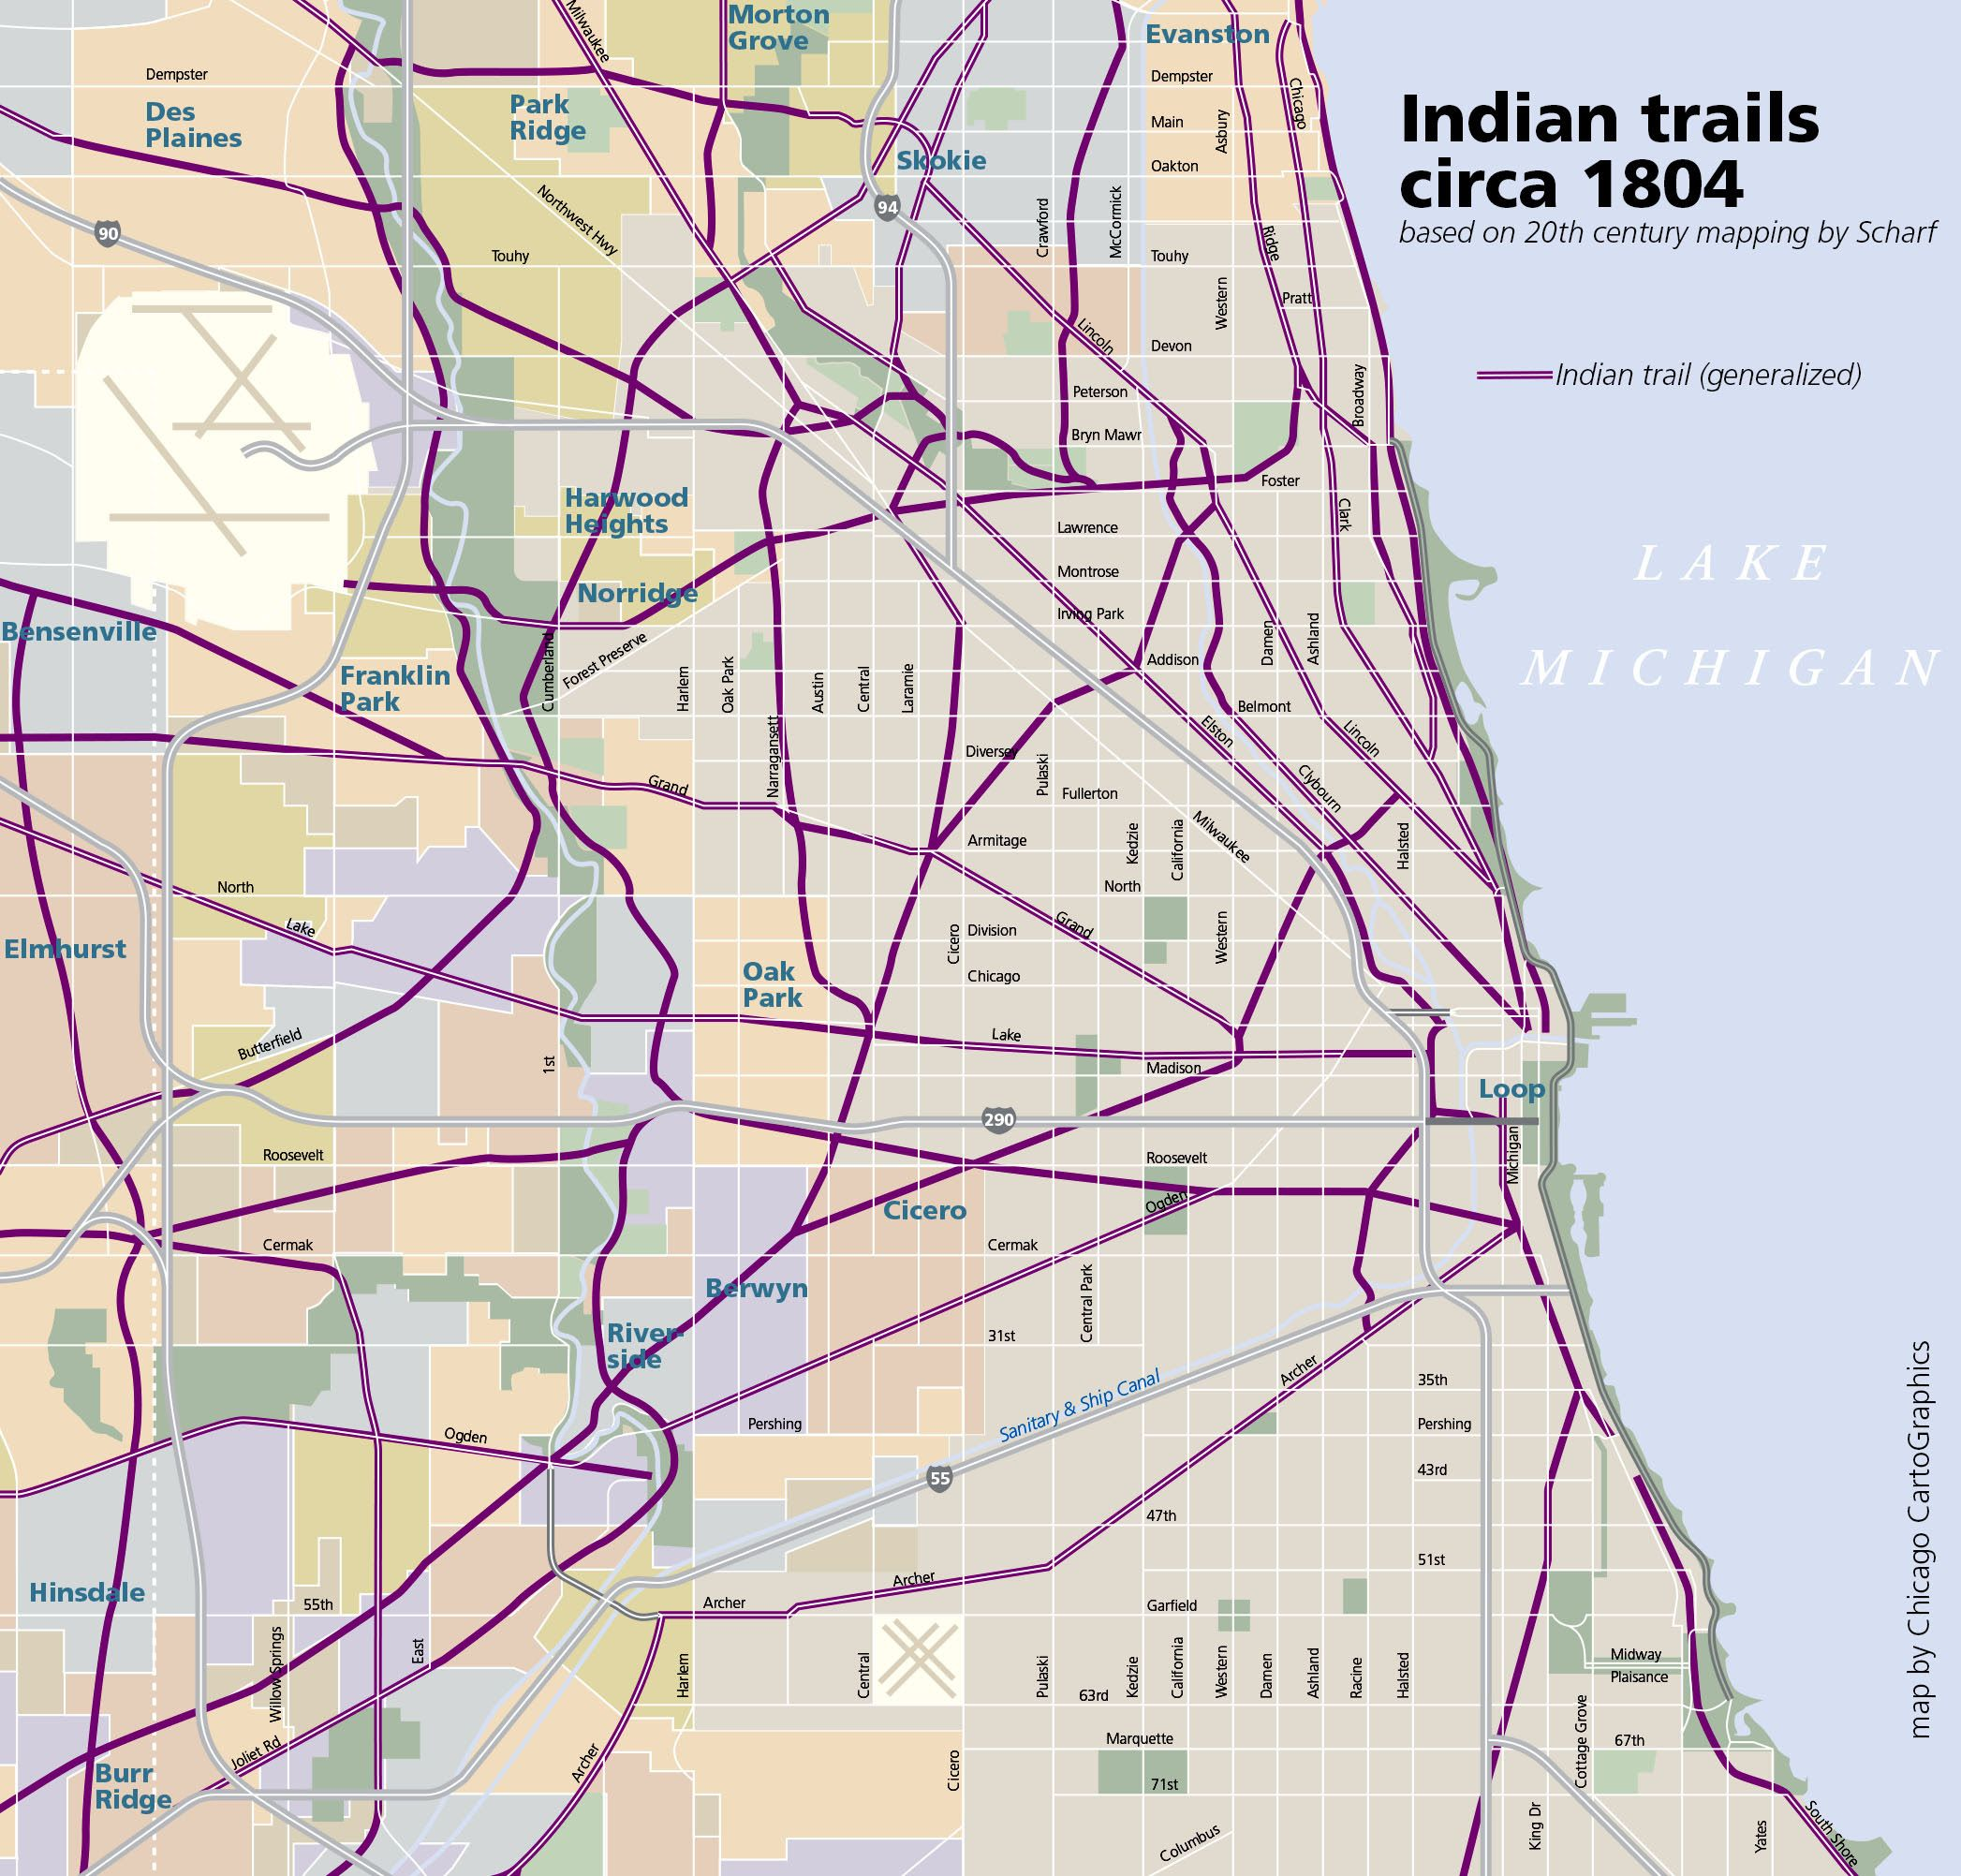 1805 Chicago area Indian Trails map